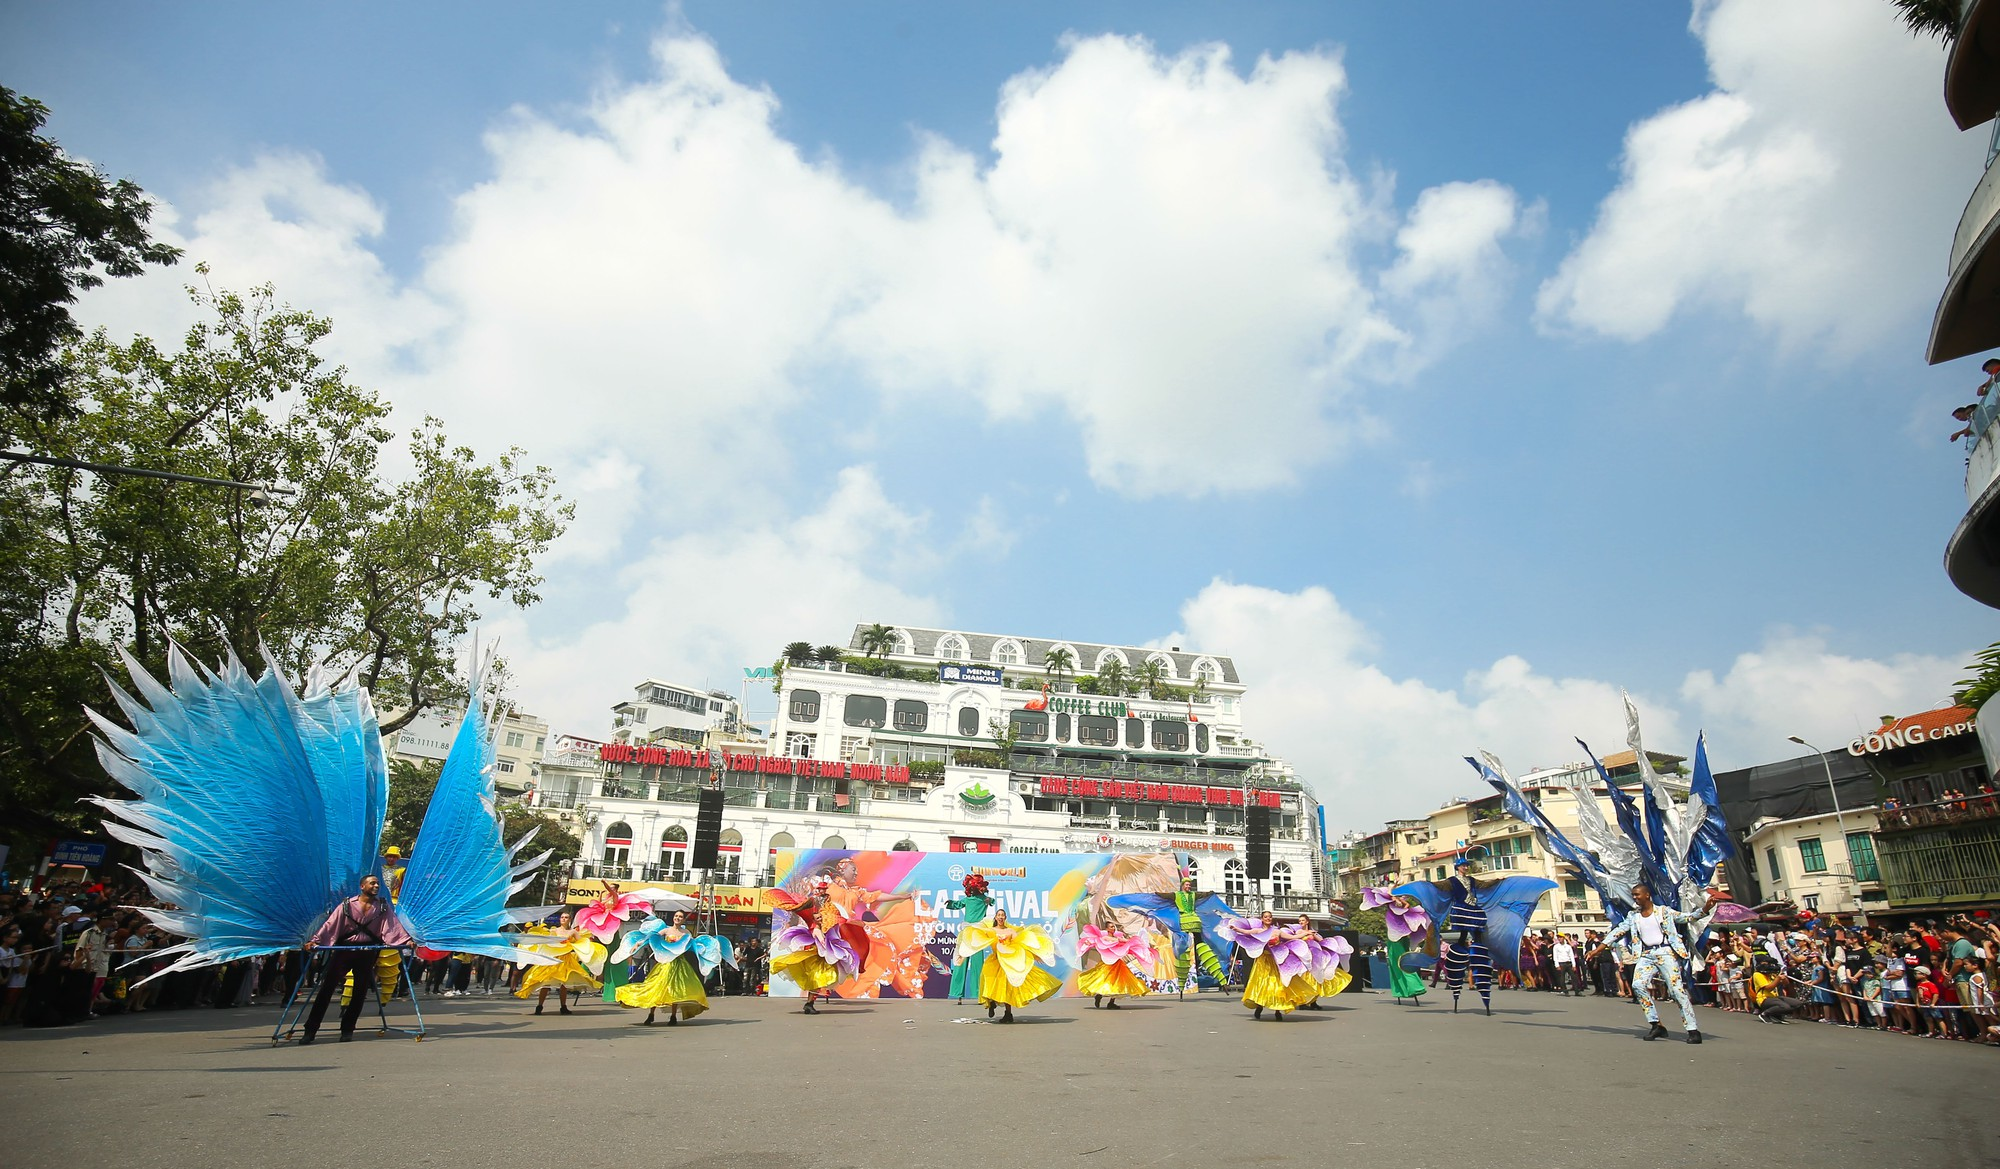 carnival sun world ha noi 610 (80)